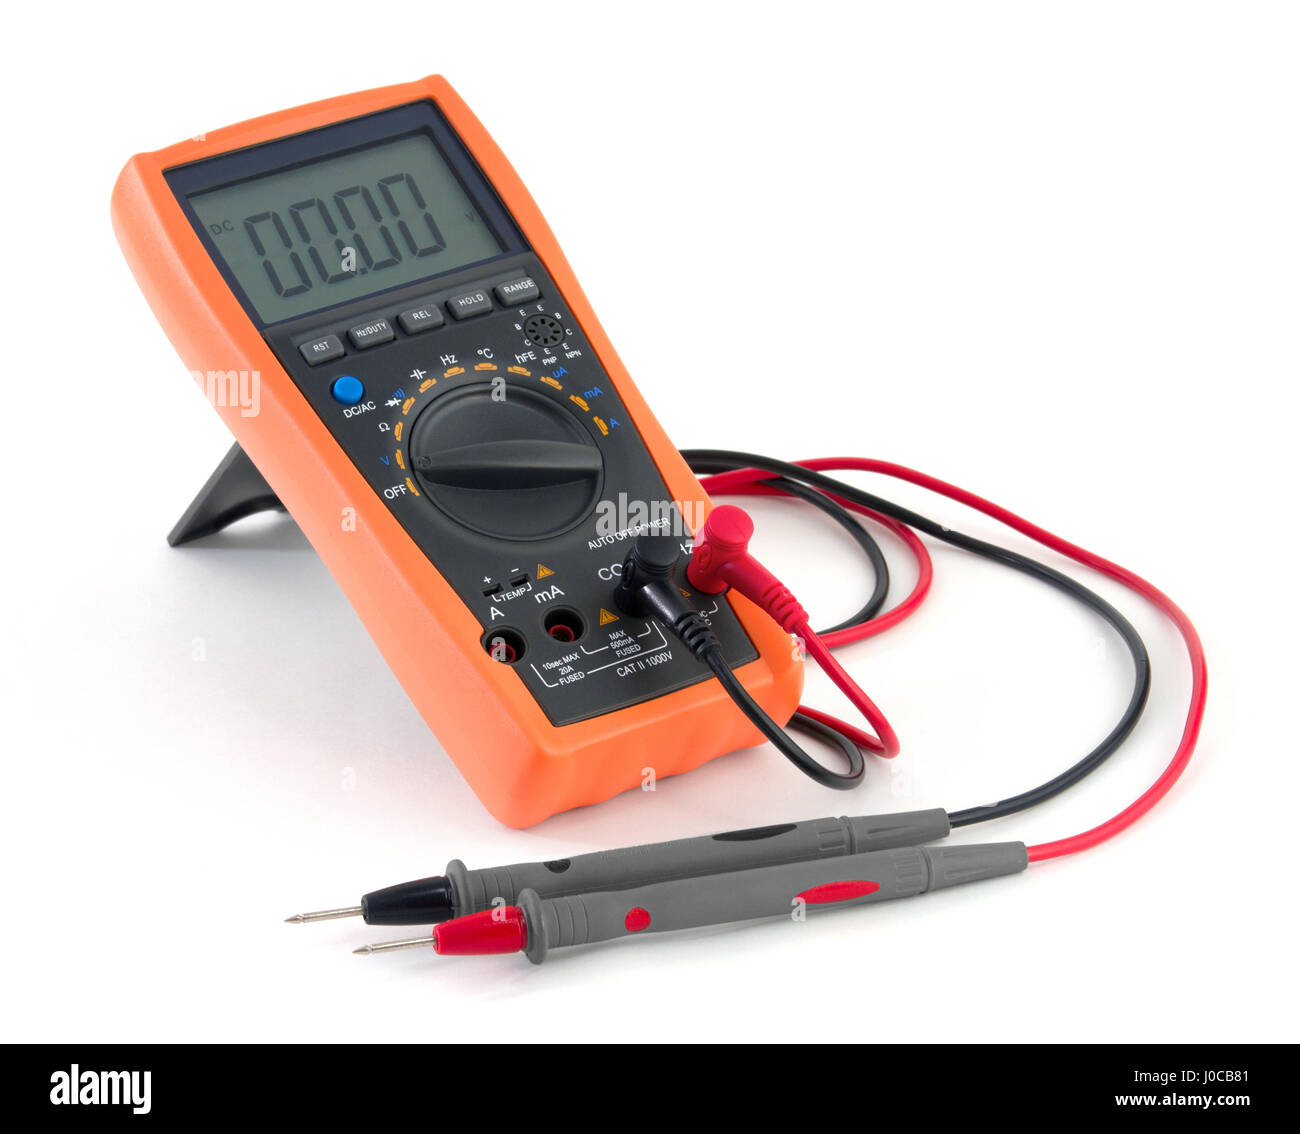 Electronic Multimeter - Stock Image